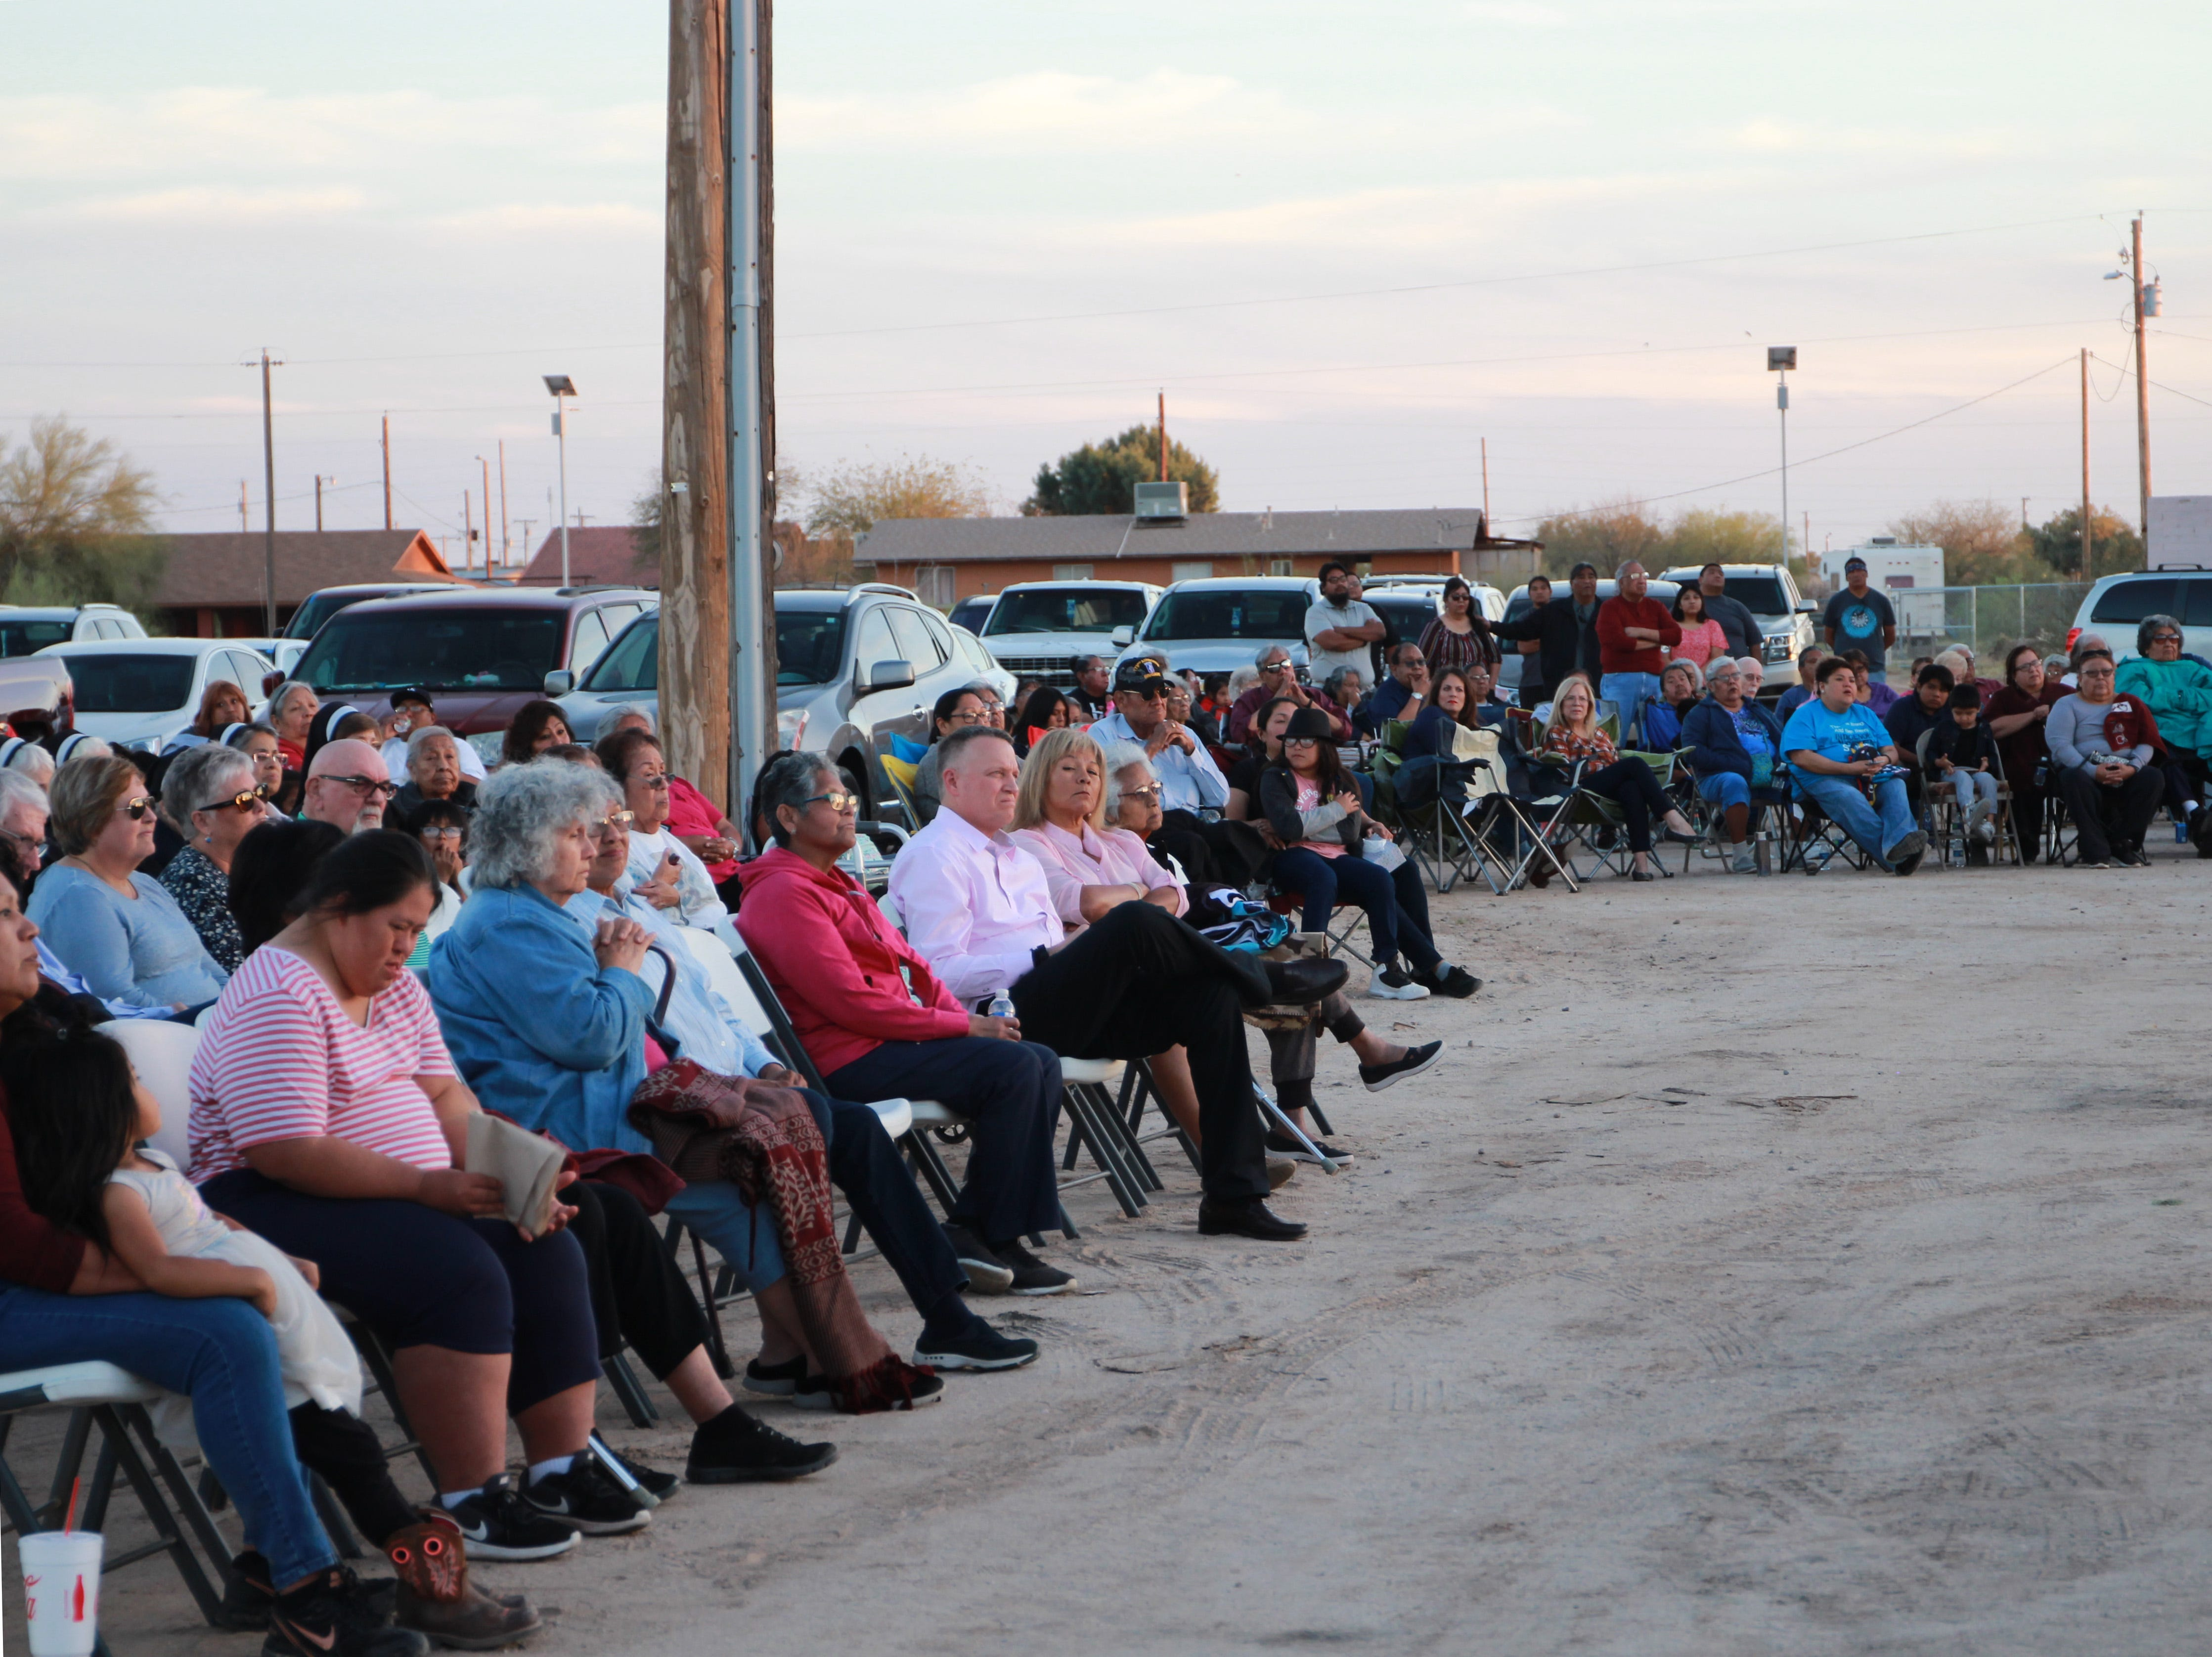 Hundreds of people from around the community came to show their support for the old church.